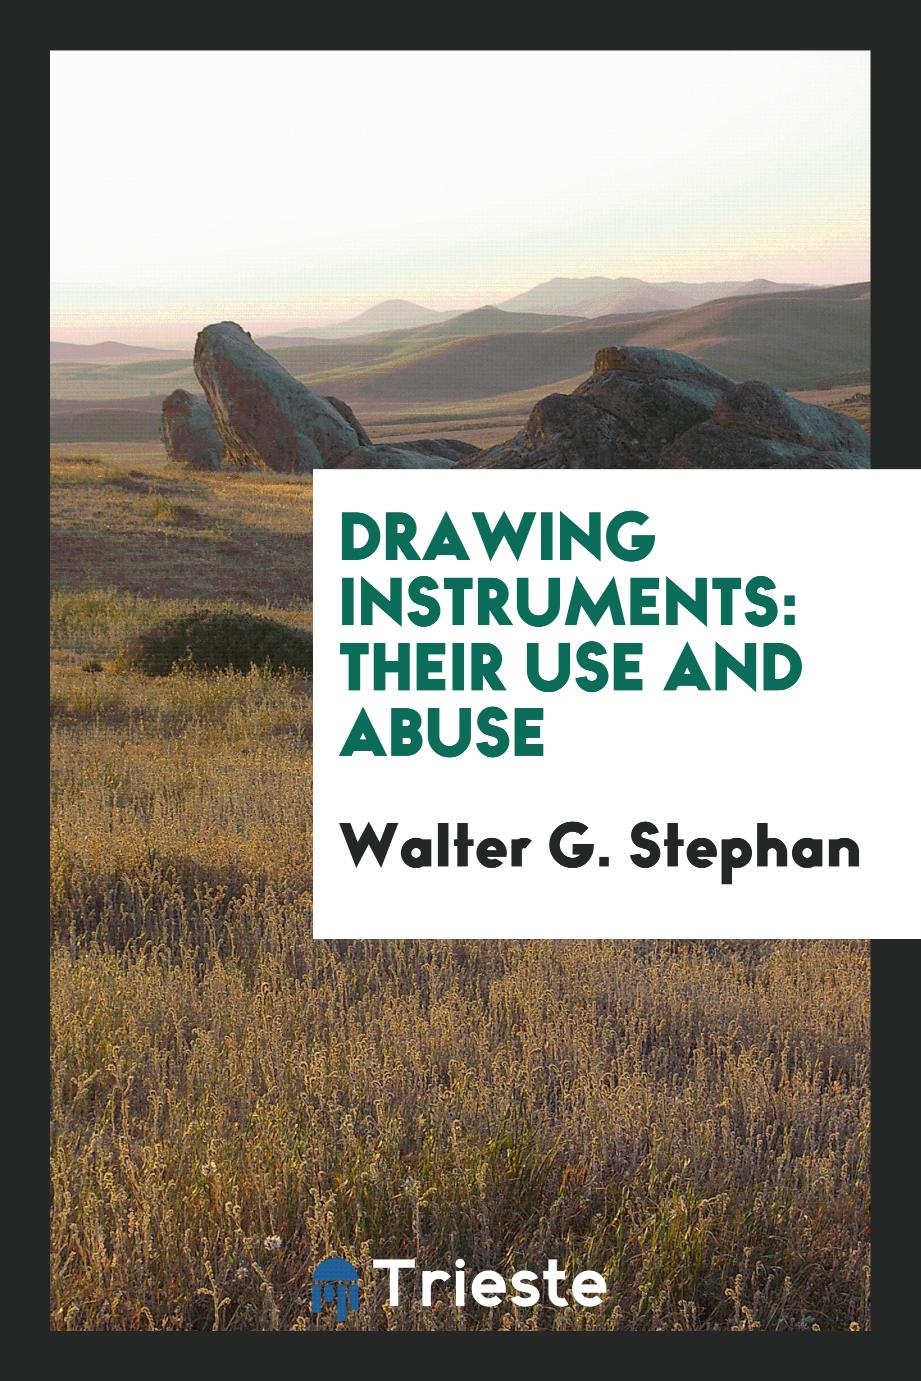 Drawing Instruments: Their Use and Abuse